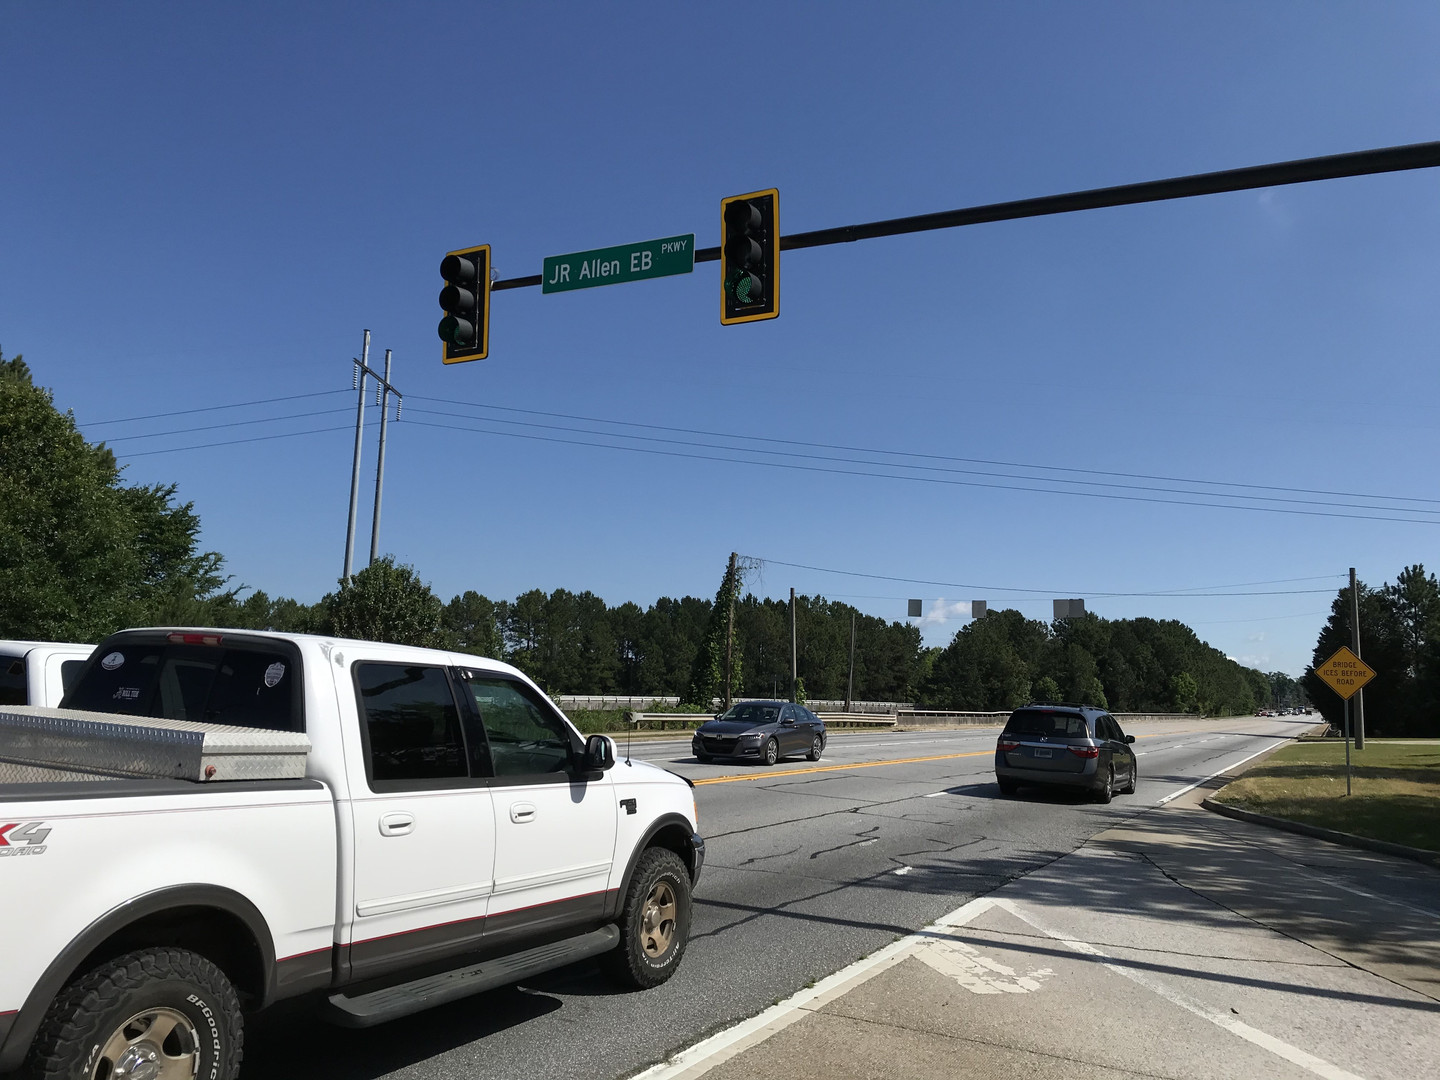 veterans-pkwy_us-80-eb_intersection.JPG